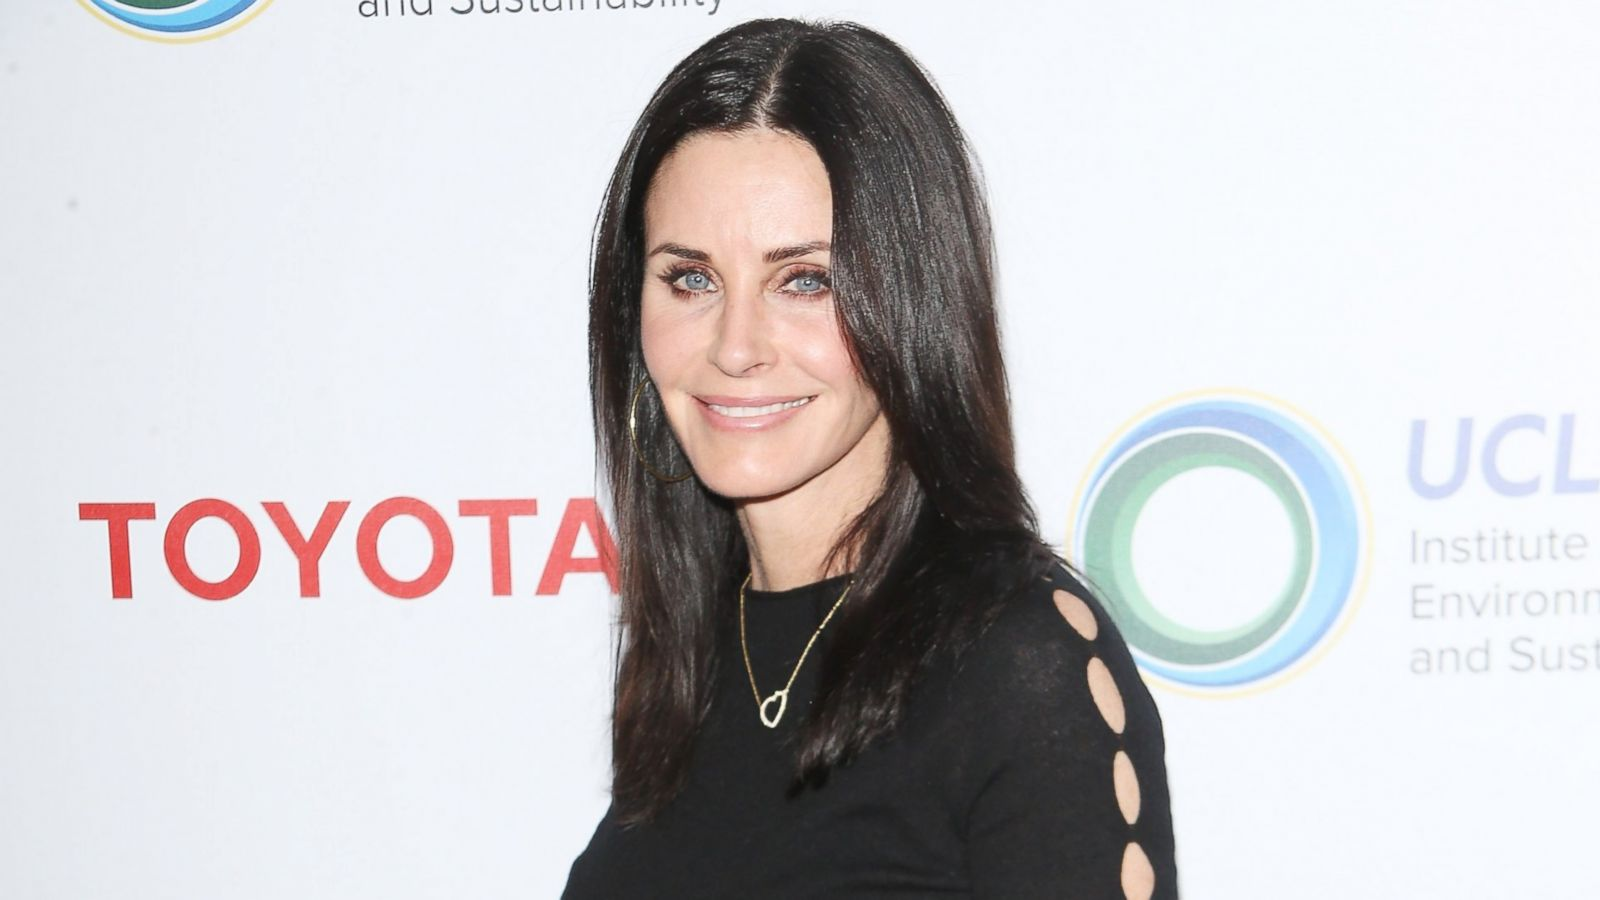 Courteney Cox Opens Up: The Interview